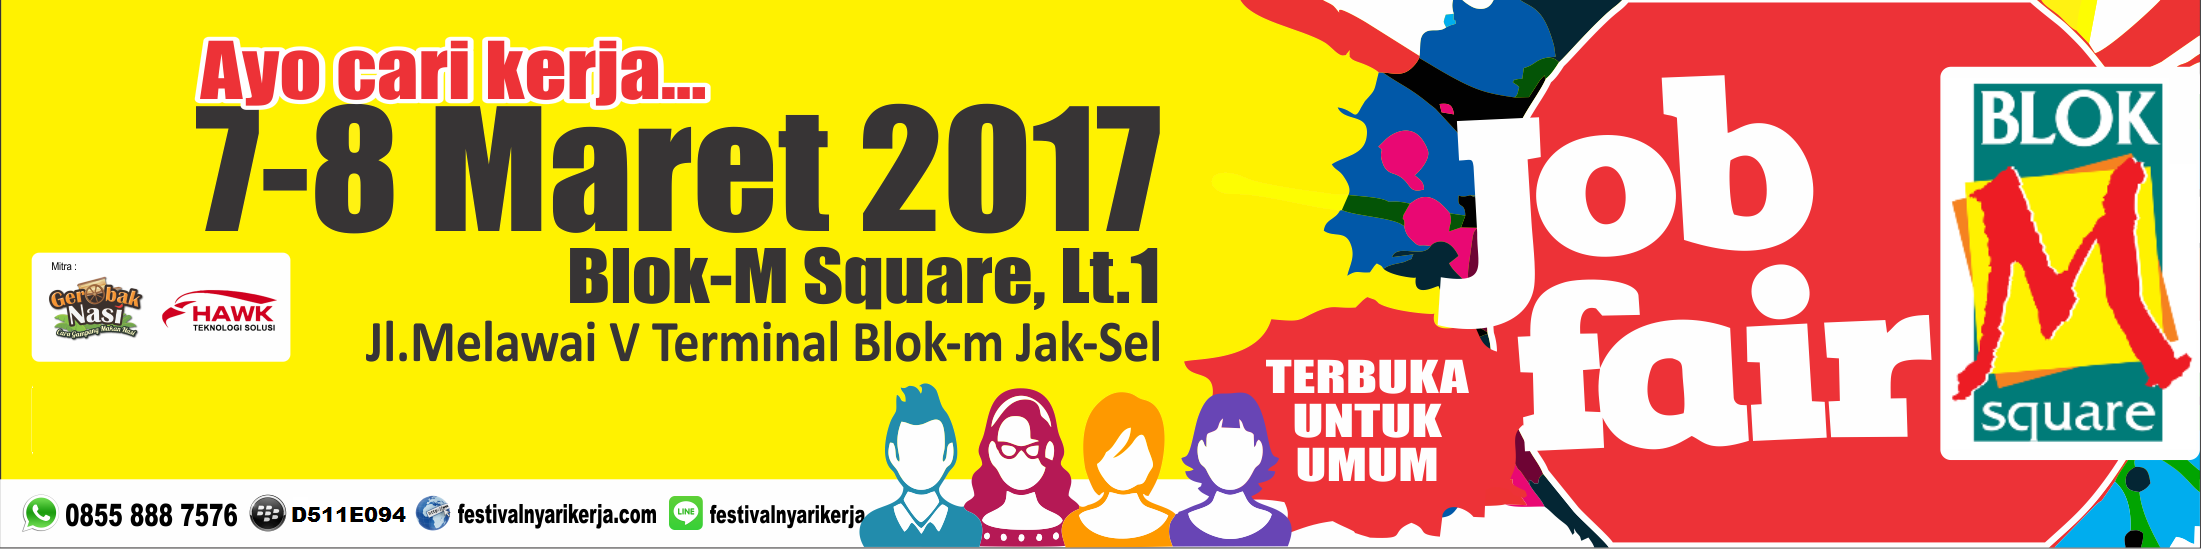 Job Fair ​Akbar ​Mall ​Blok M Square​, 7 – 8 Maret ​2017